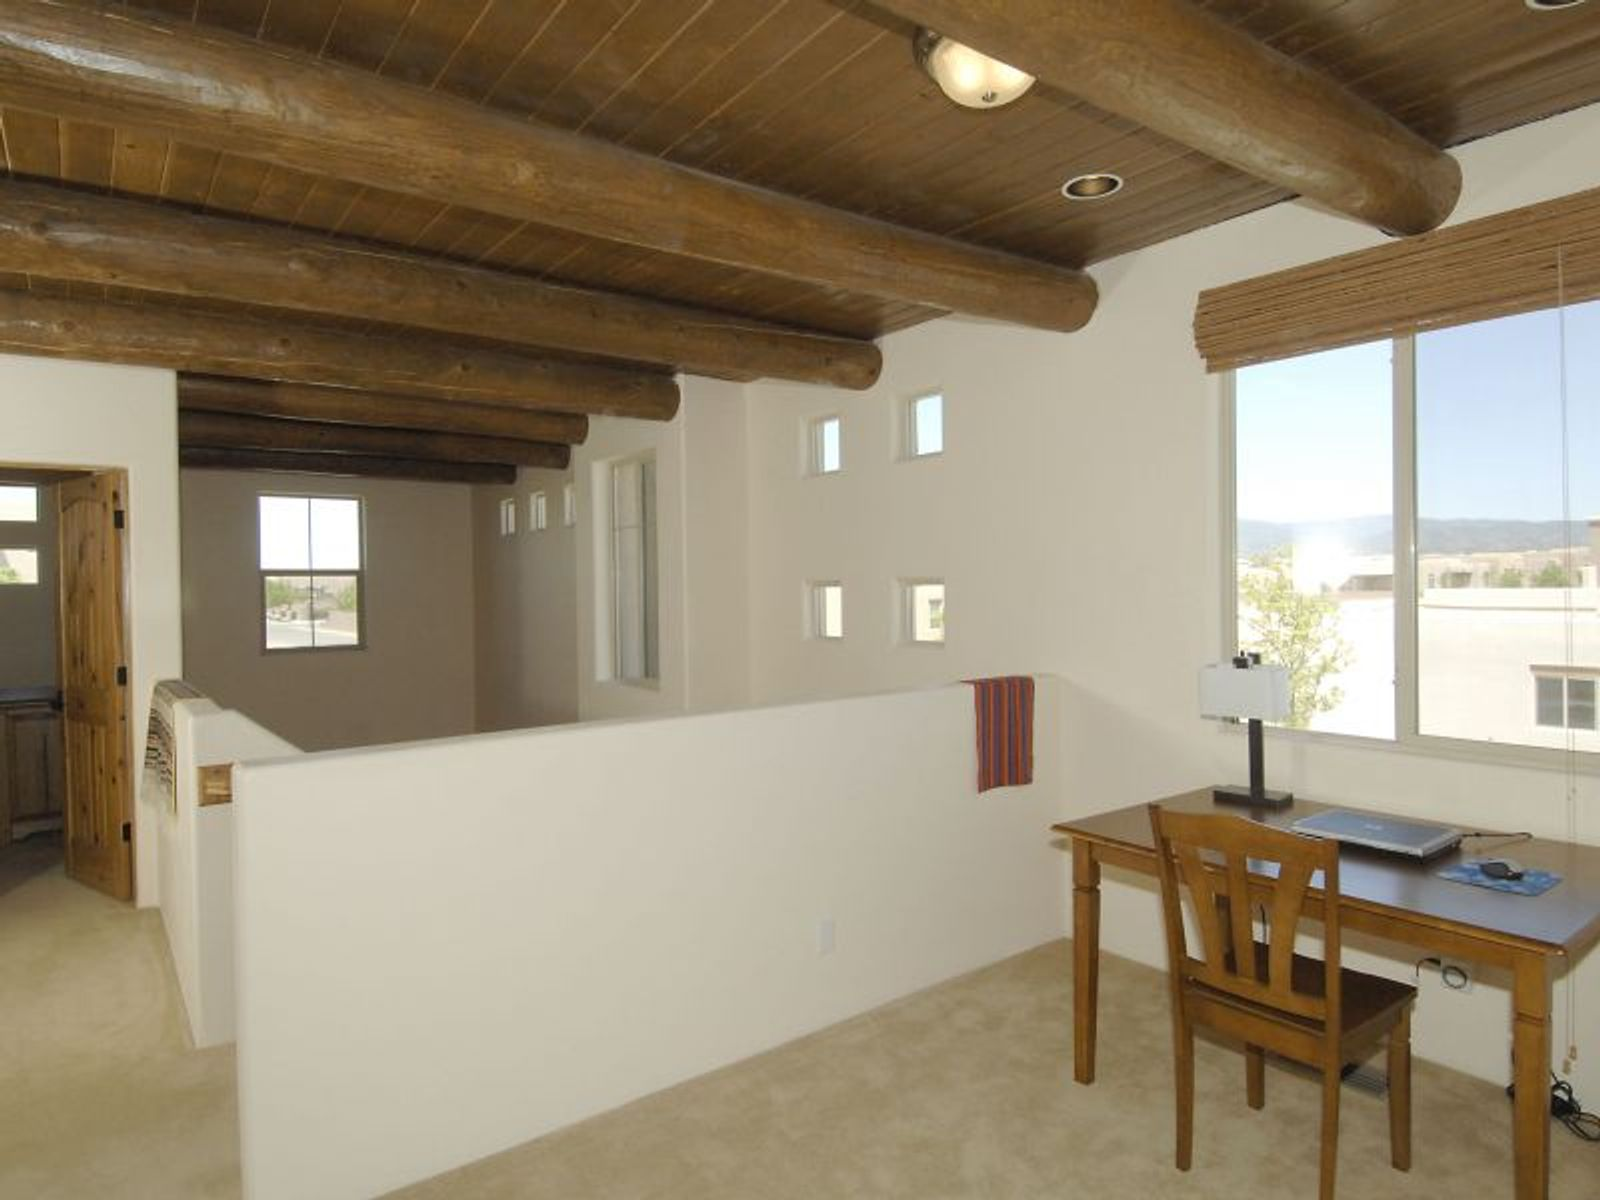 Vigas and wood ceiling treatments